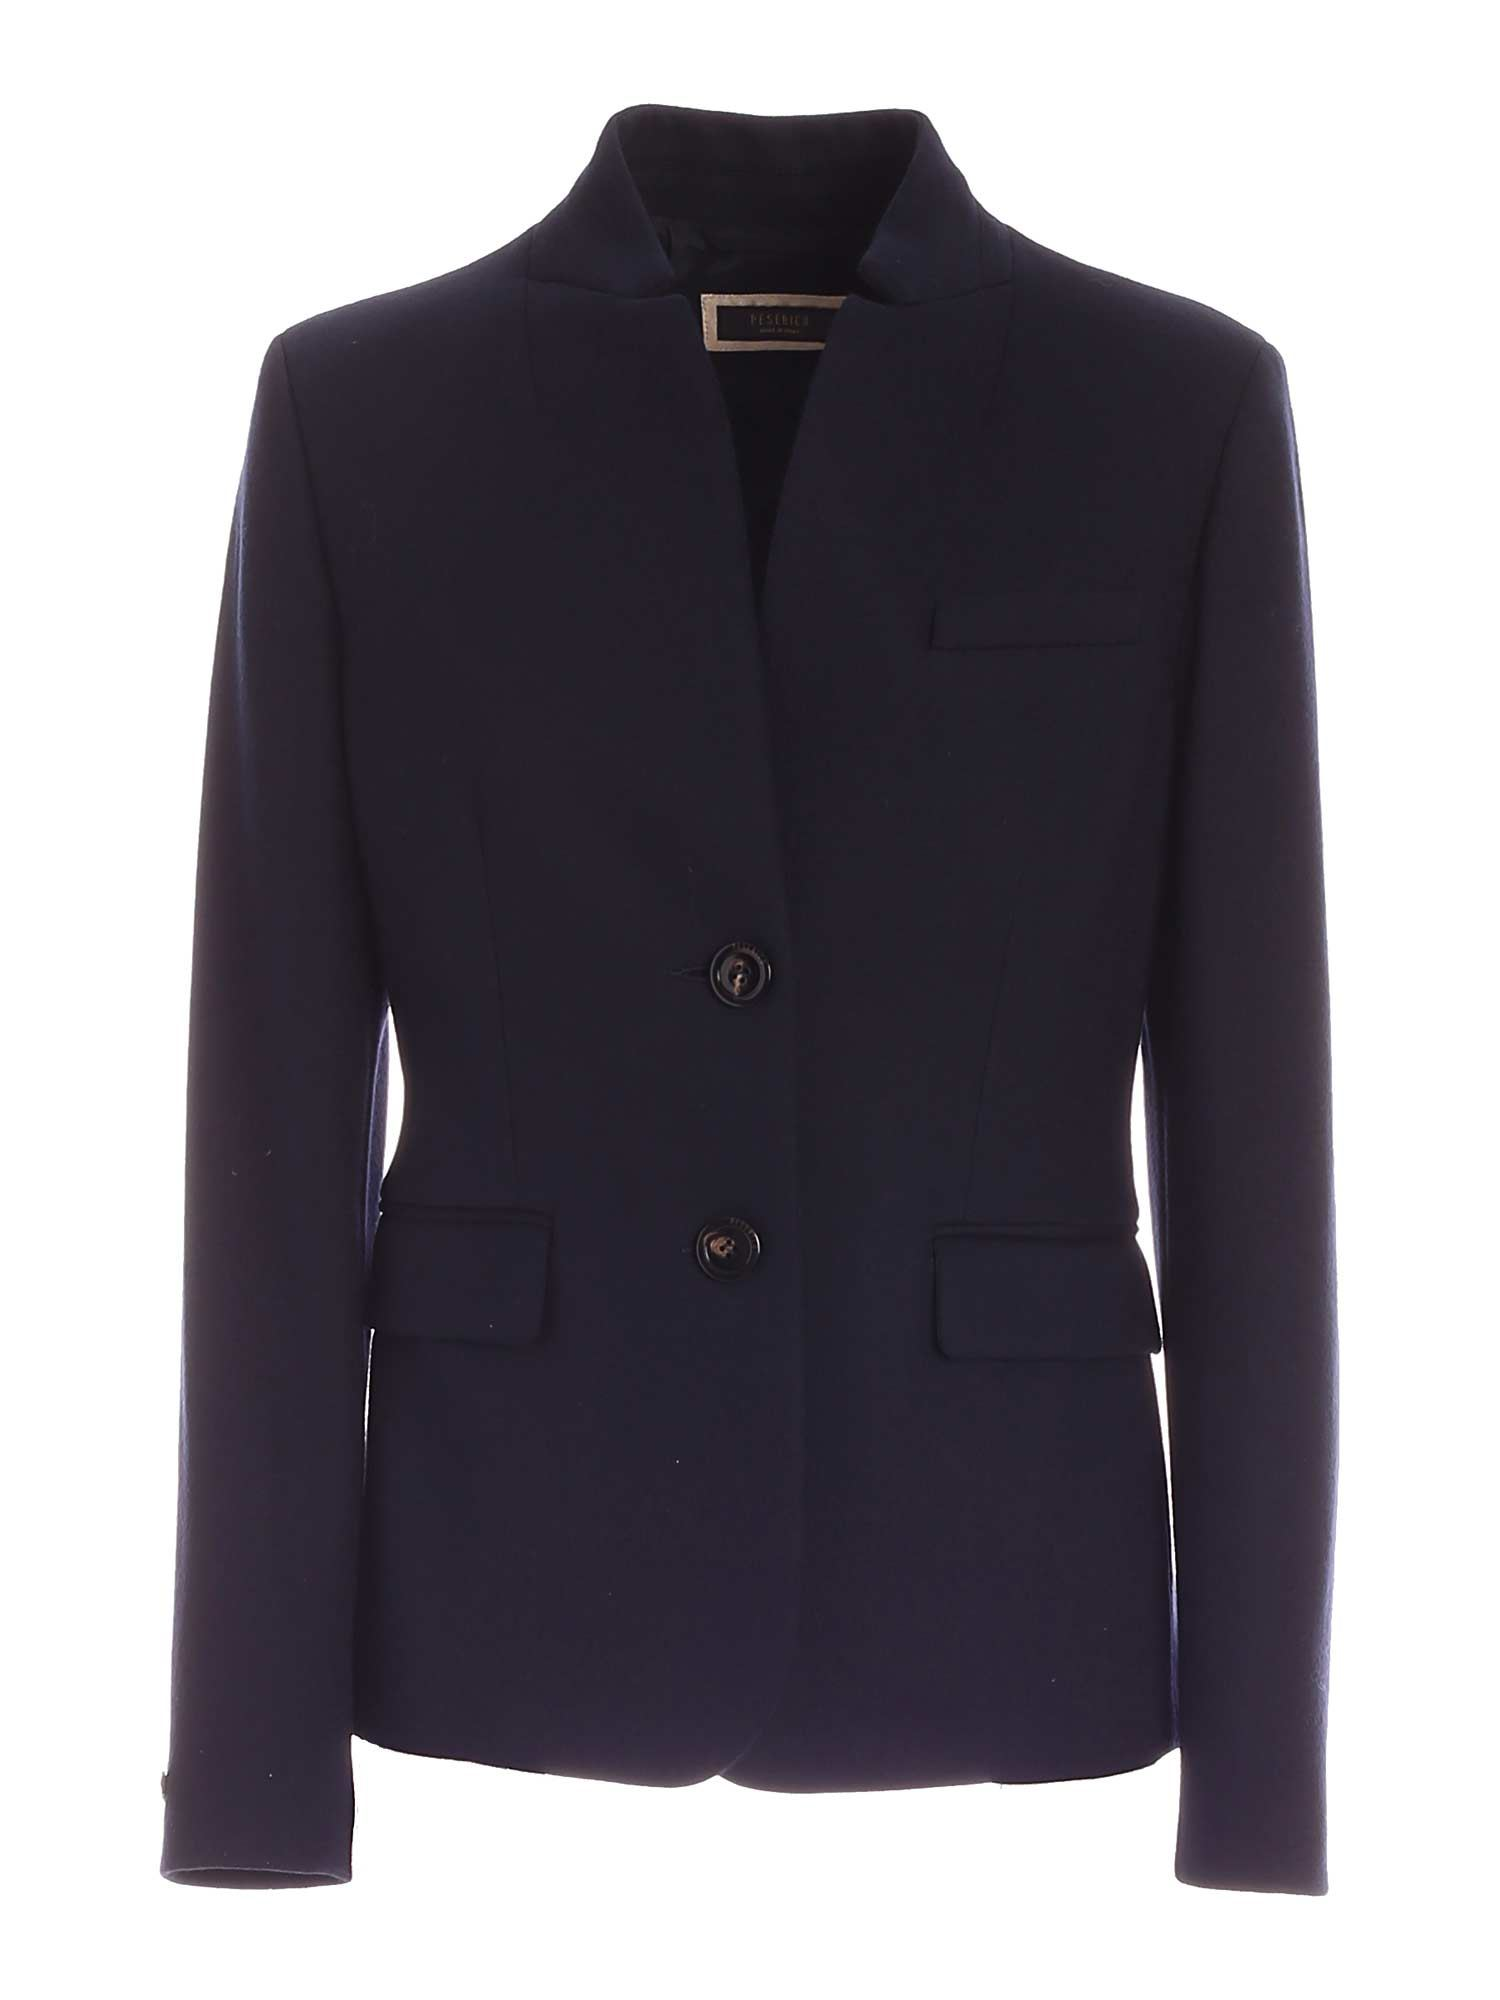 Peserico SEMI-LINED SINGLE-BREASTED JACKET IN BLUE